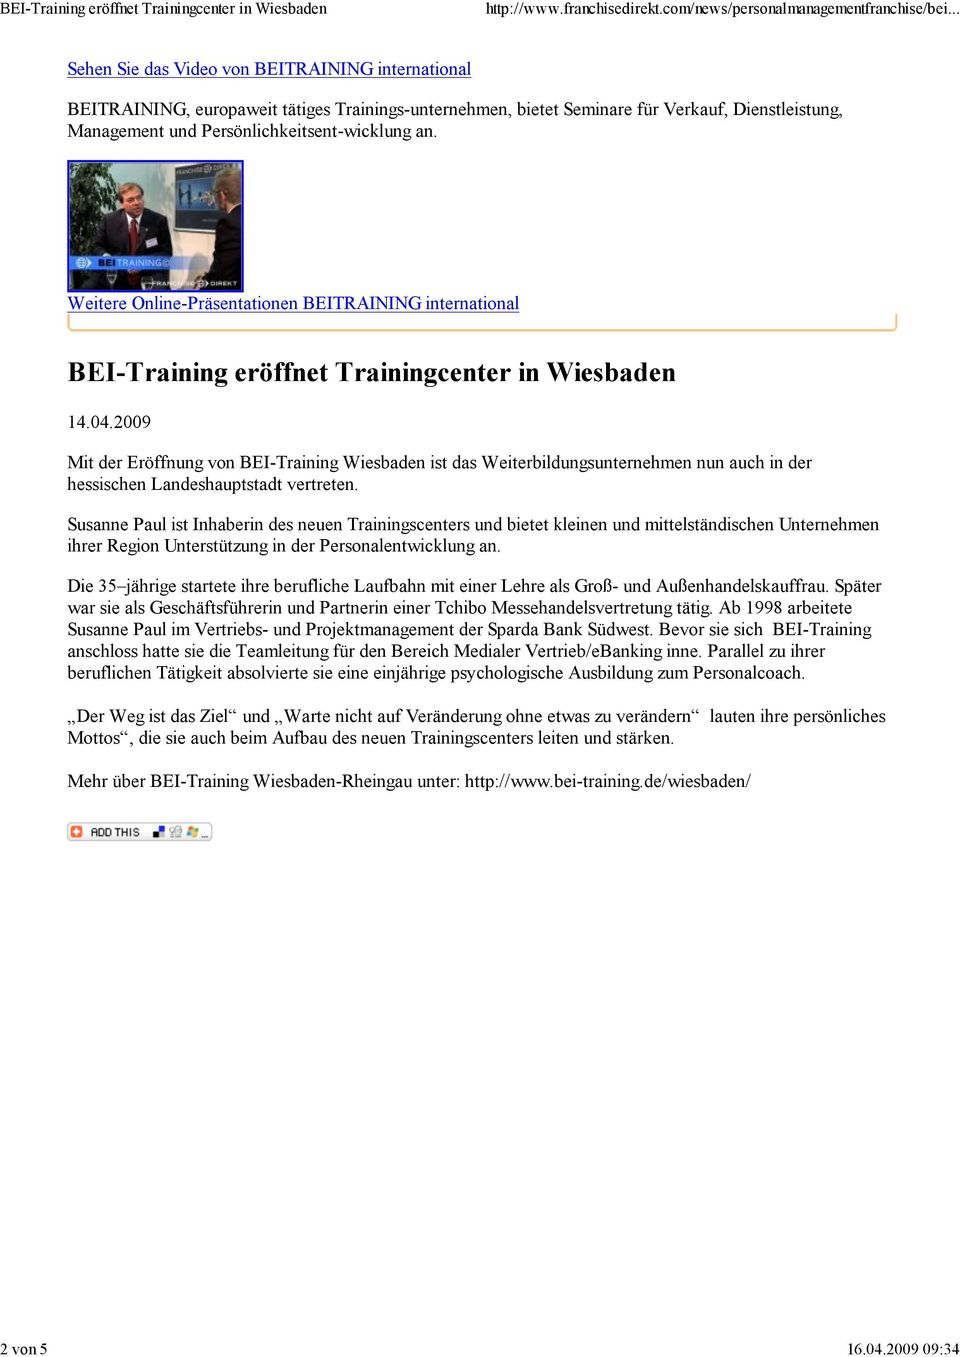 Persönlichkeitsent-wicklung an. Weitere Online-Präsentationen BEITRAINING international BEI-Training eröffnet Trainingcenter in Wiesbaden 14.04.